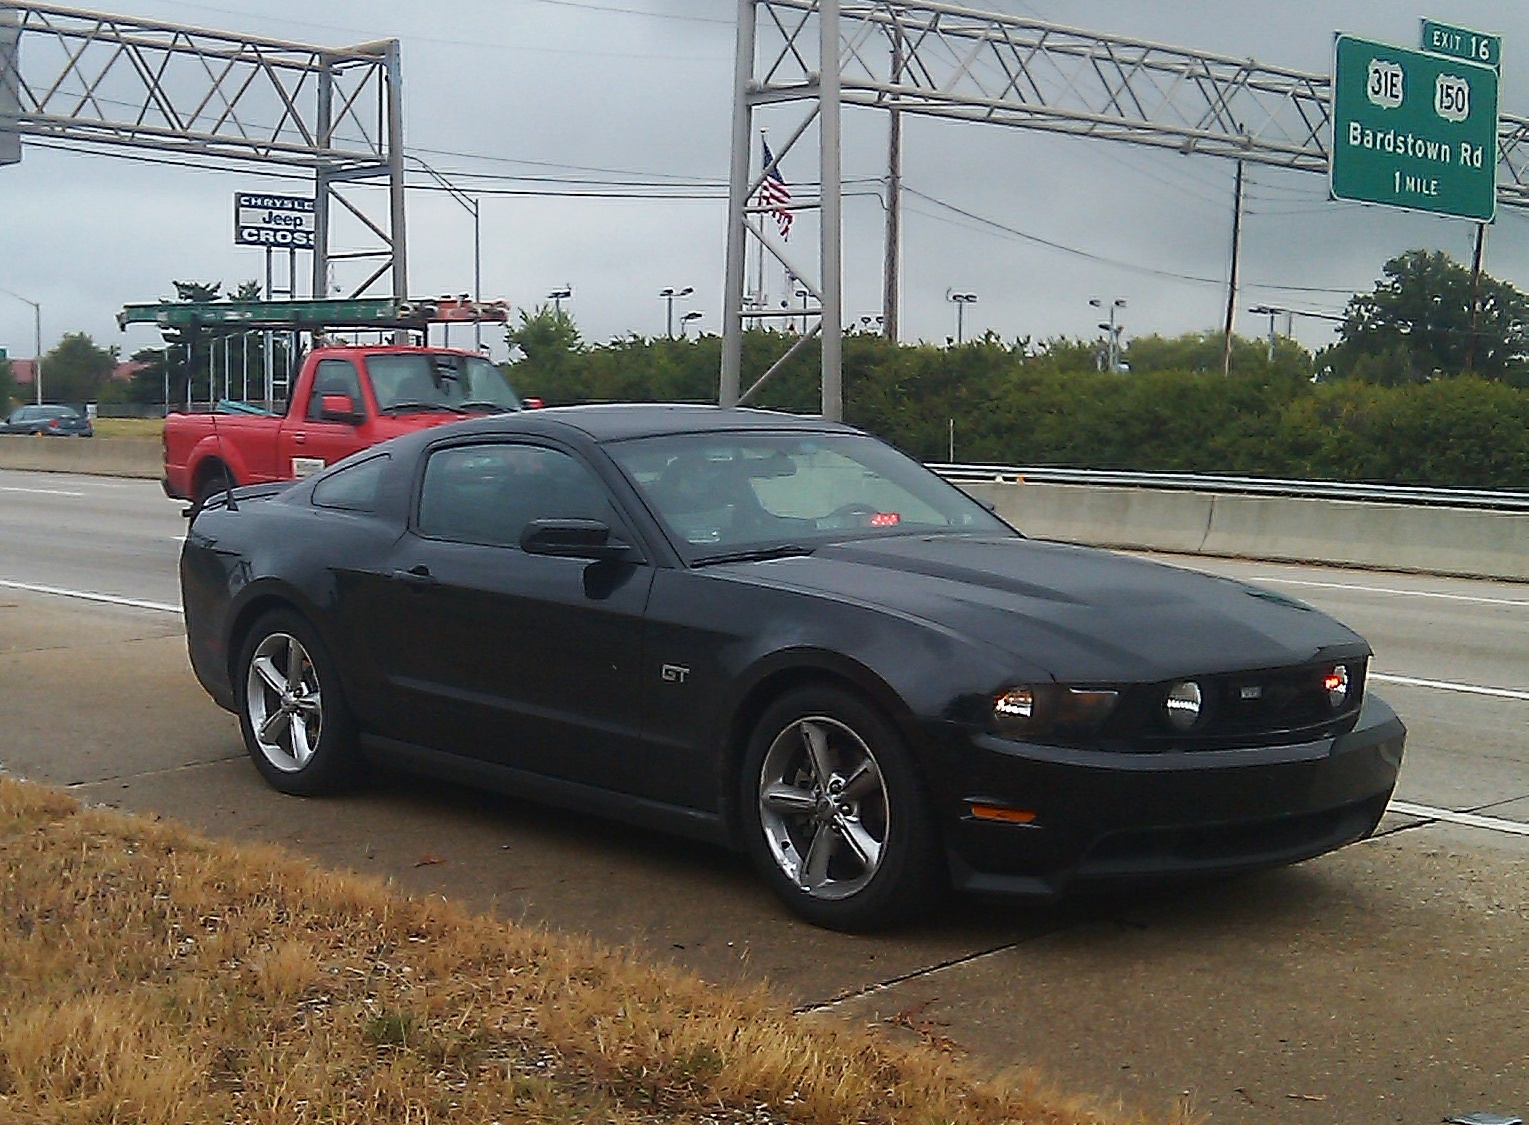 This unmarked black LMPD Mustang was used by former officer Sam Cromity, whose voluminous speeding ticket writing helped him become one of the top earners on the city of Louisville payroll. (photo: September 2011)